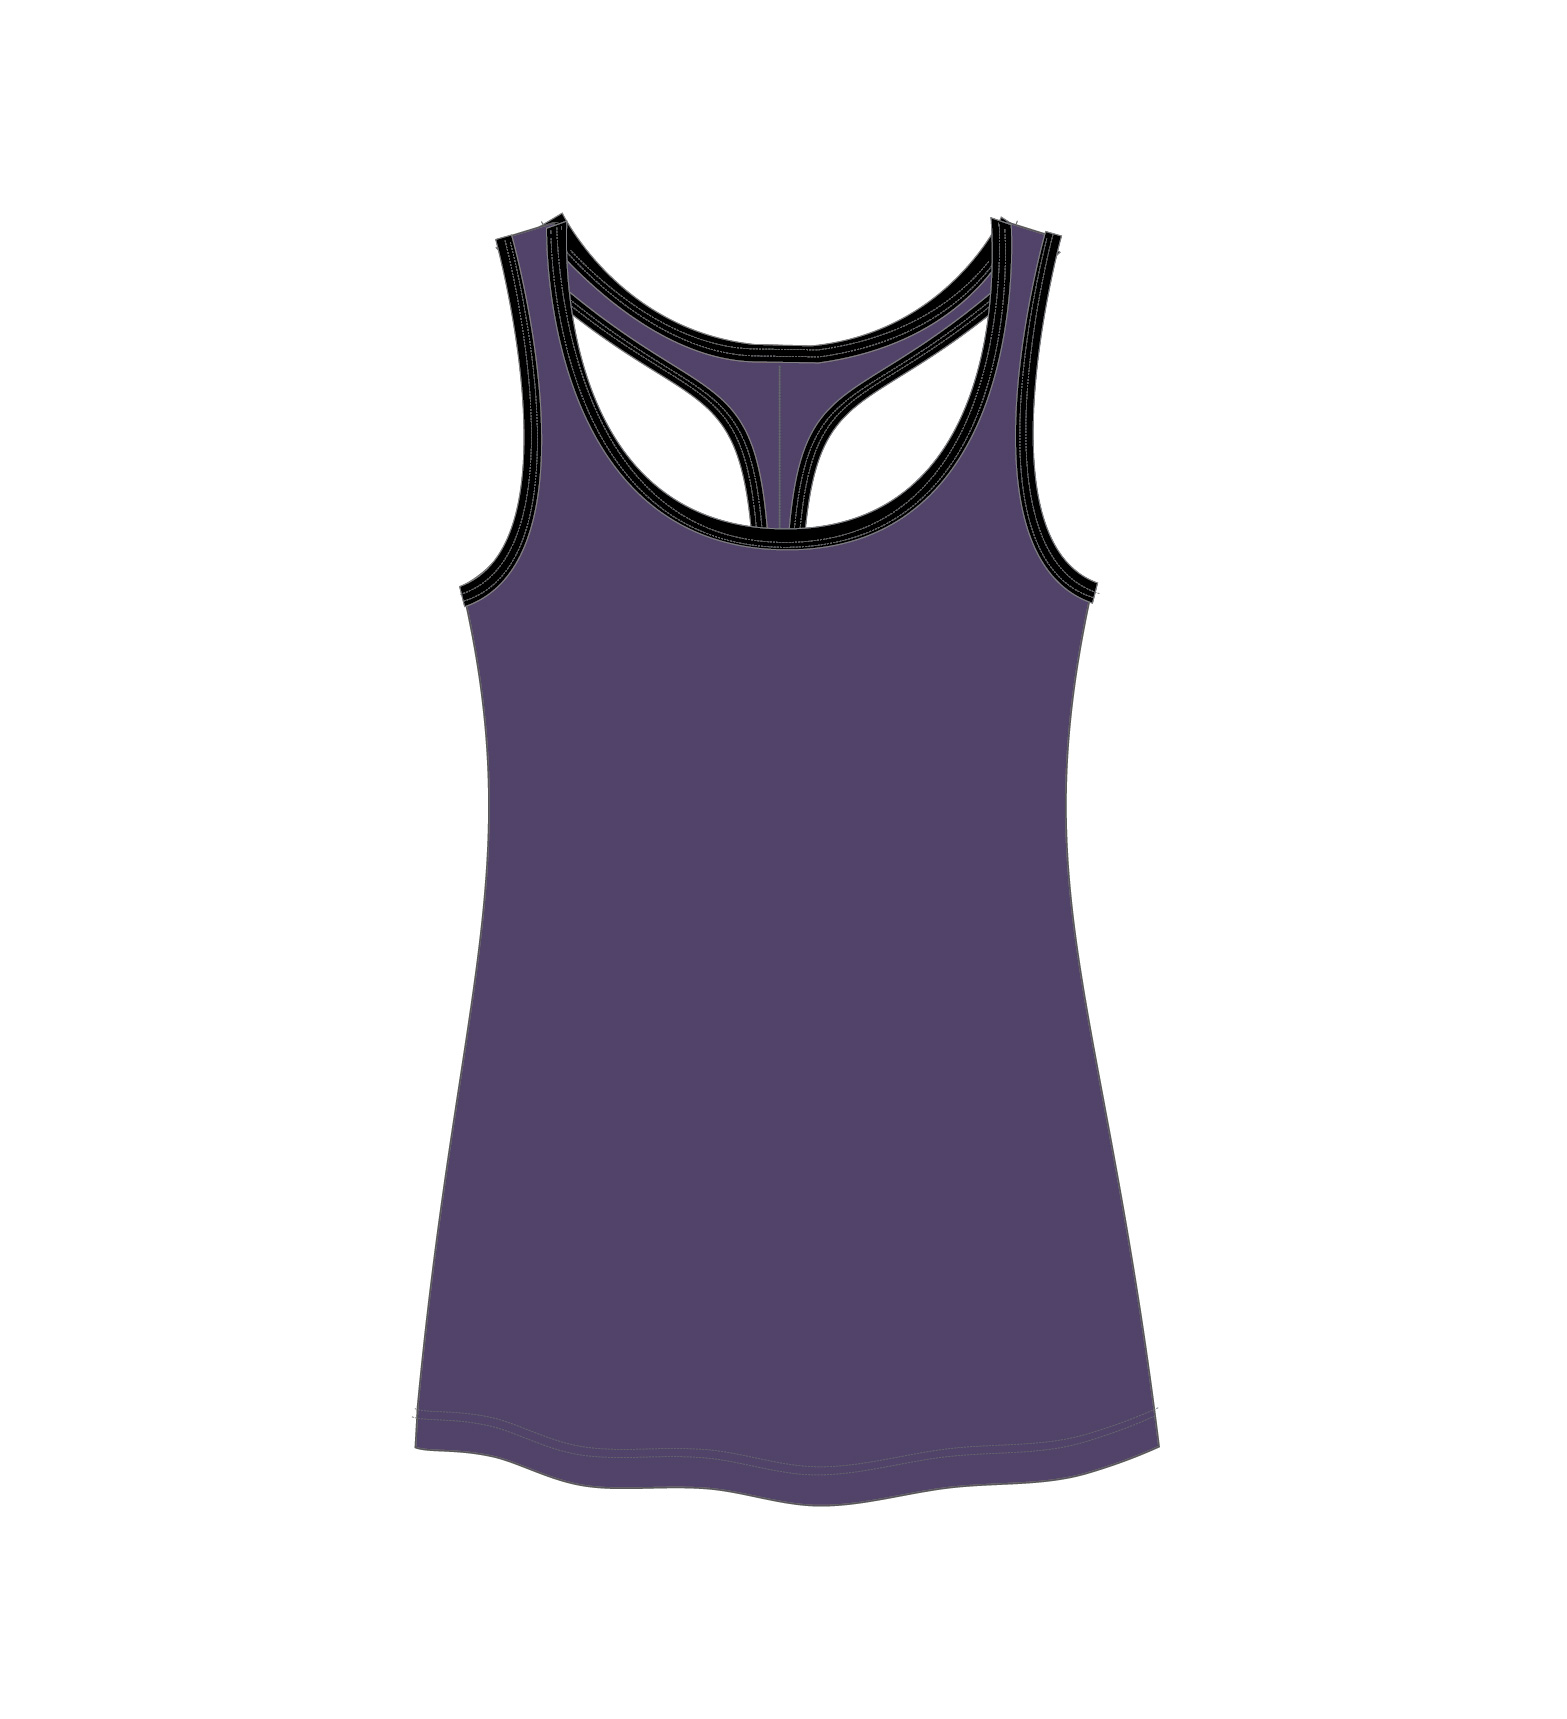 purple tanks top sketch